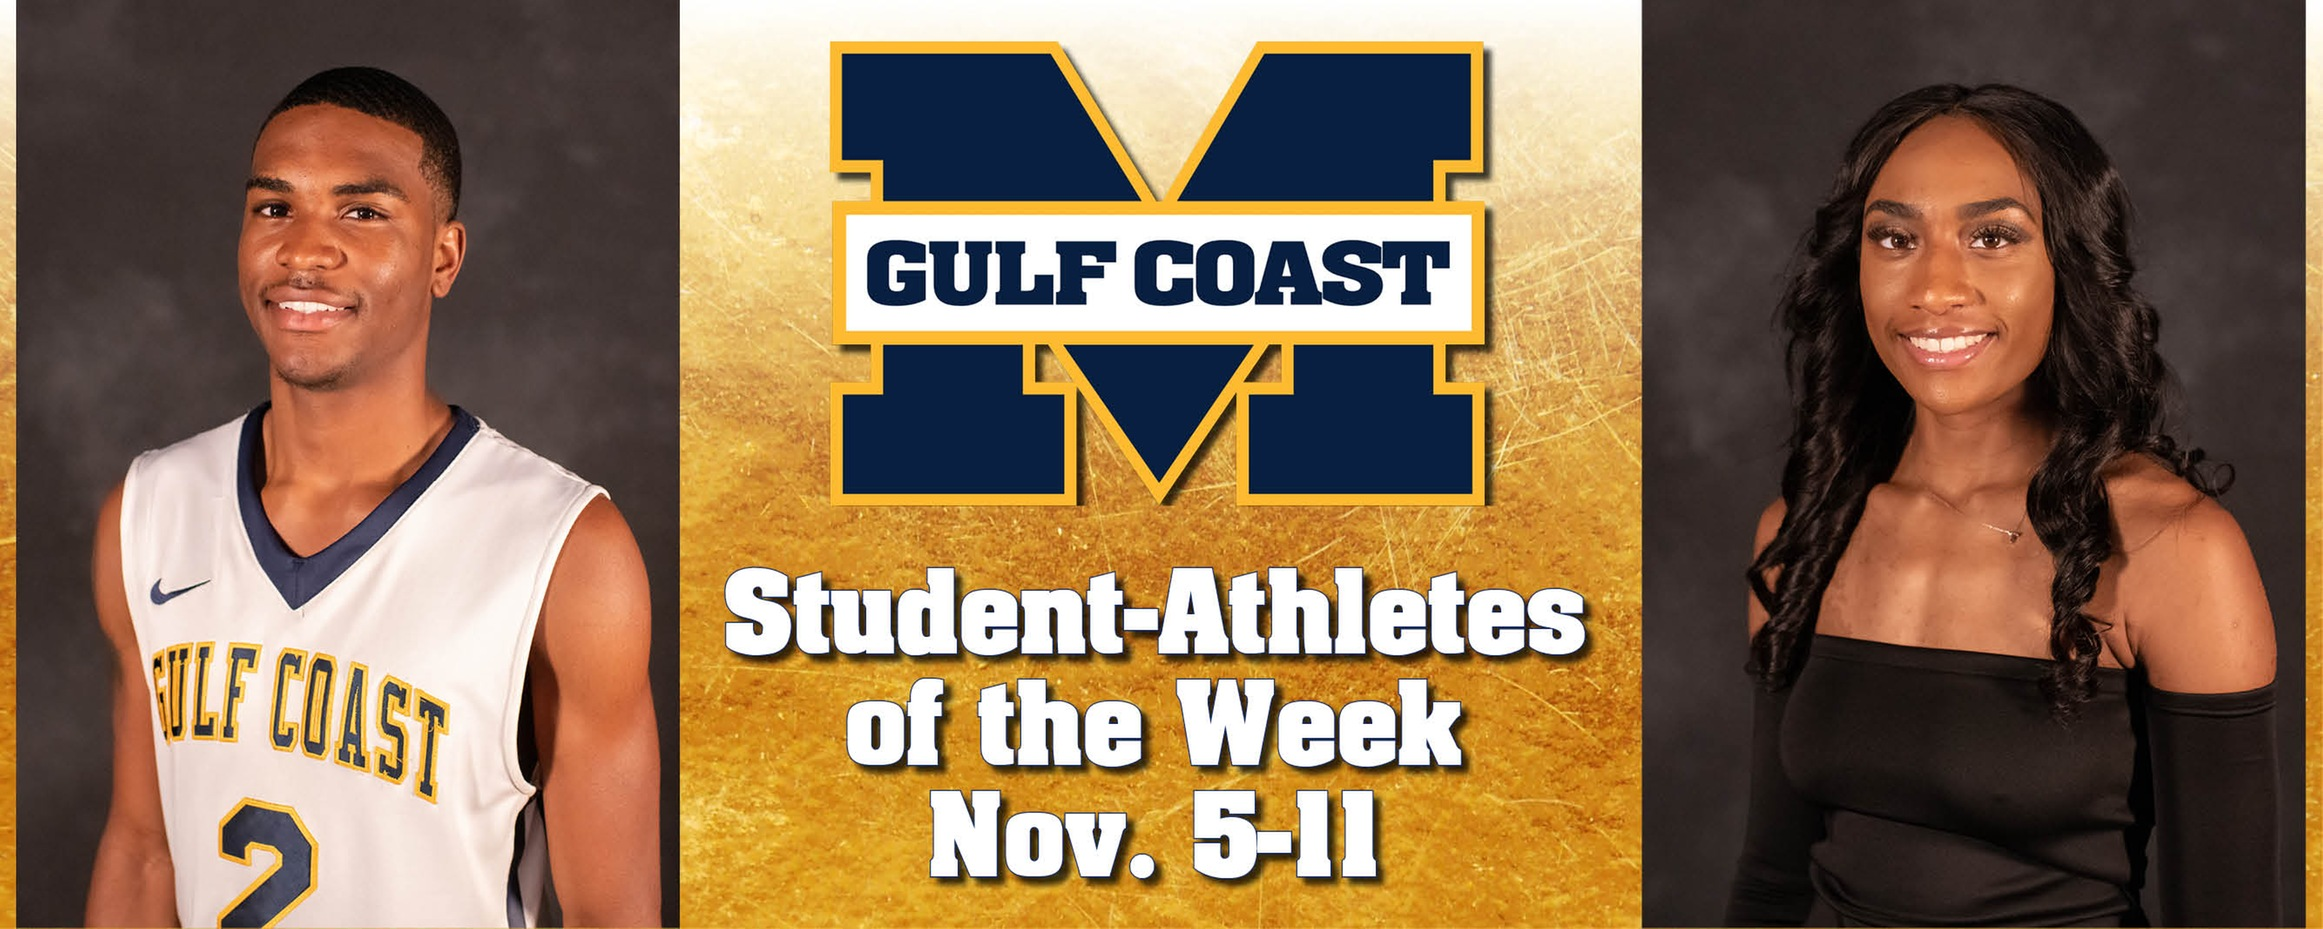 Oney, Thigpen named MGCCC Student-Athletes of the Week